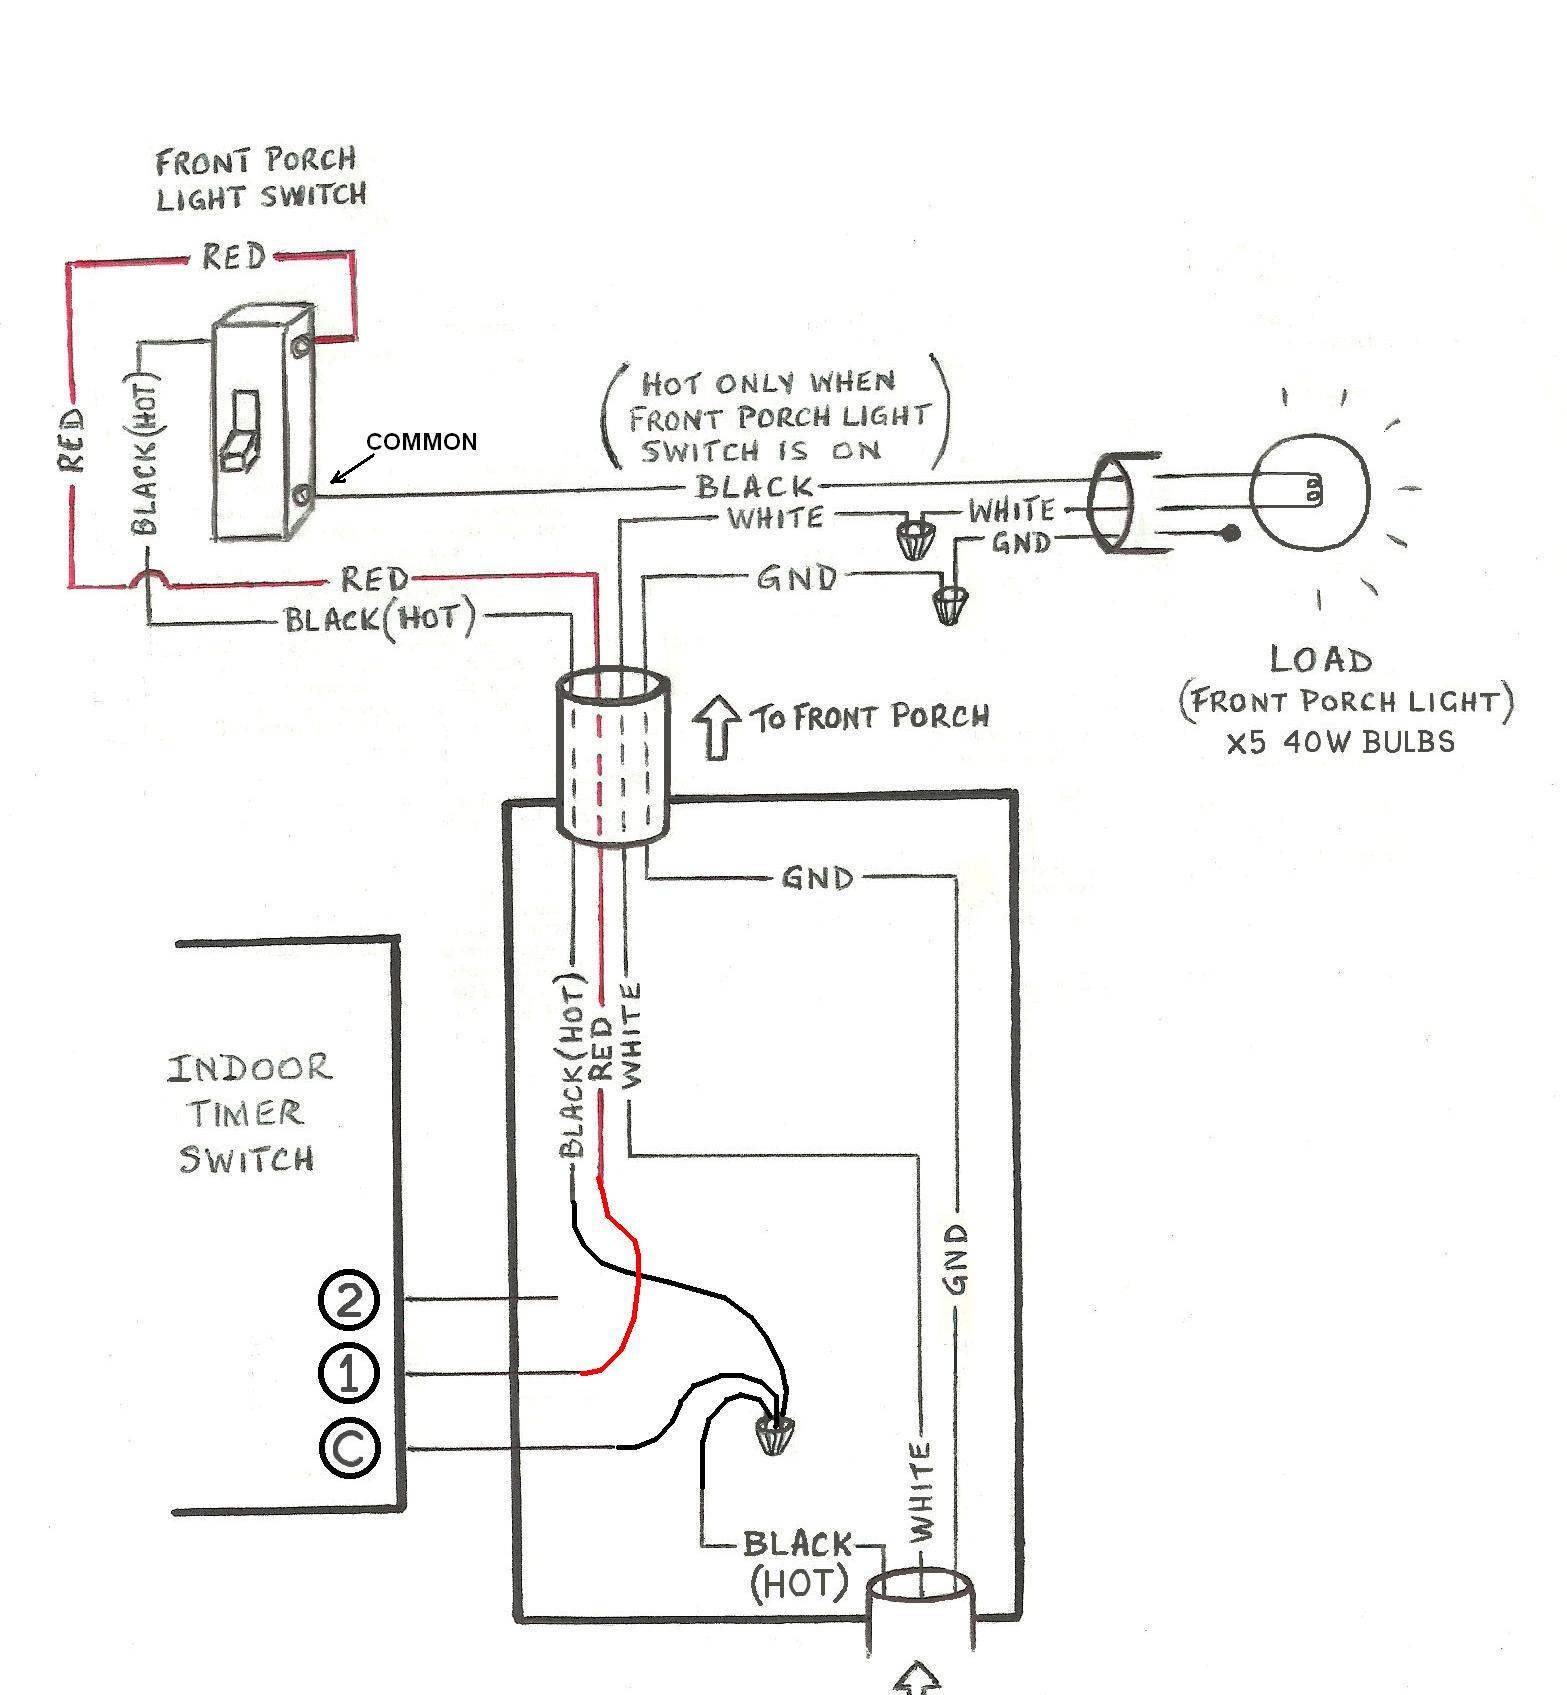 hight resolution of switch wiring diagram furthermore on off toggle switch wiring switch on wiring furthermore electrical layout house plans wiring